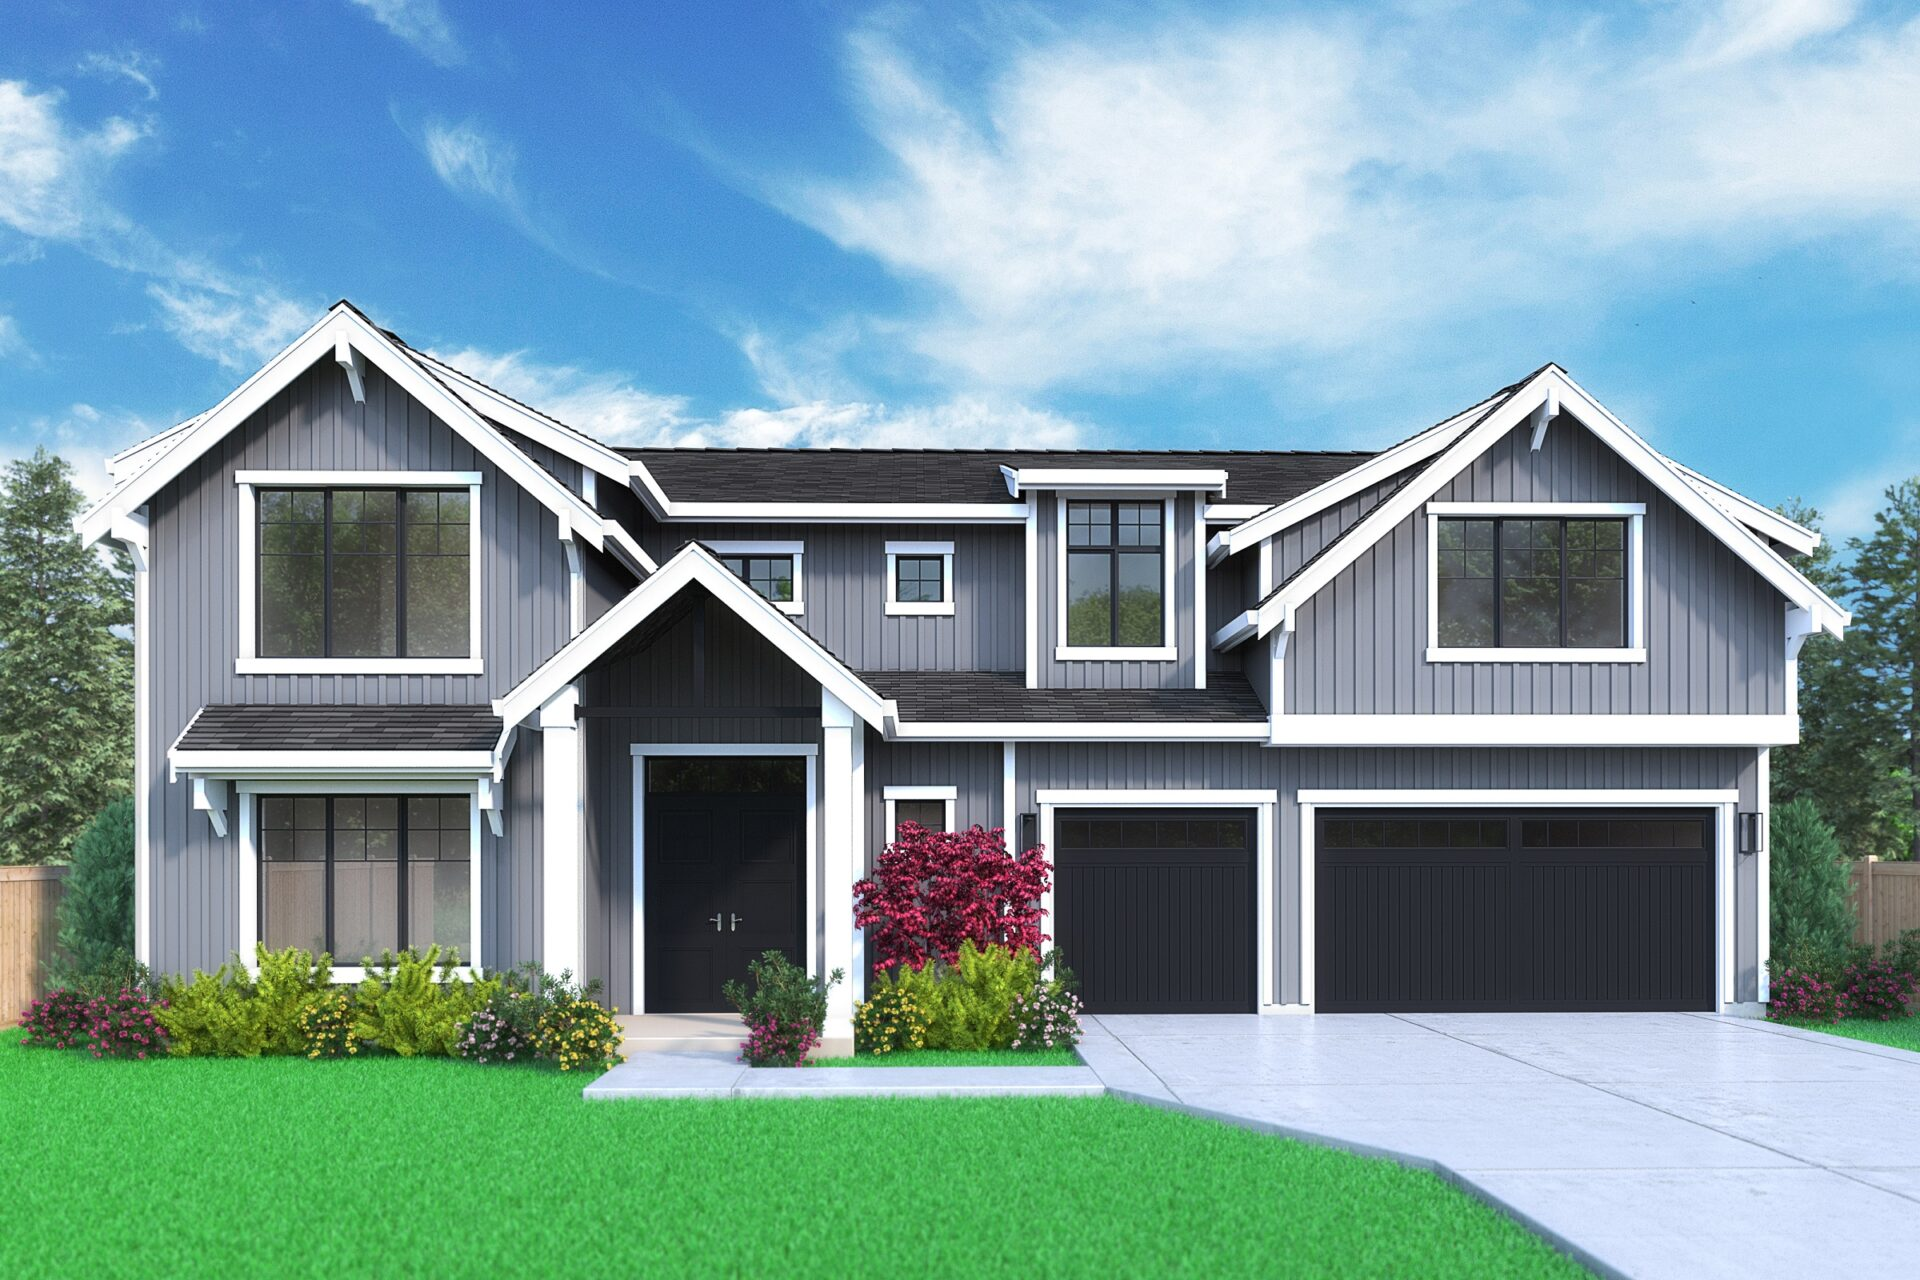 View our new luxury home construction on13025 NE 112th St, in Kirkland, WA from MN Custom Homes